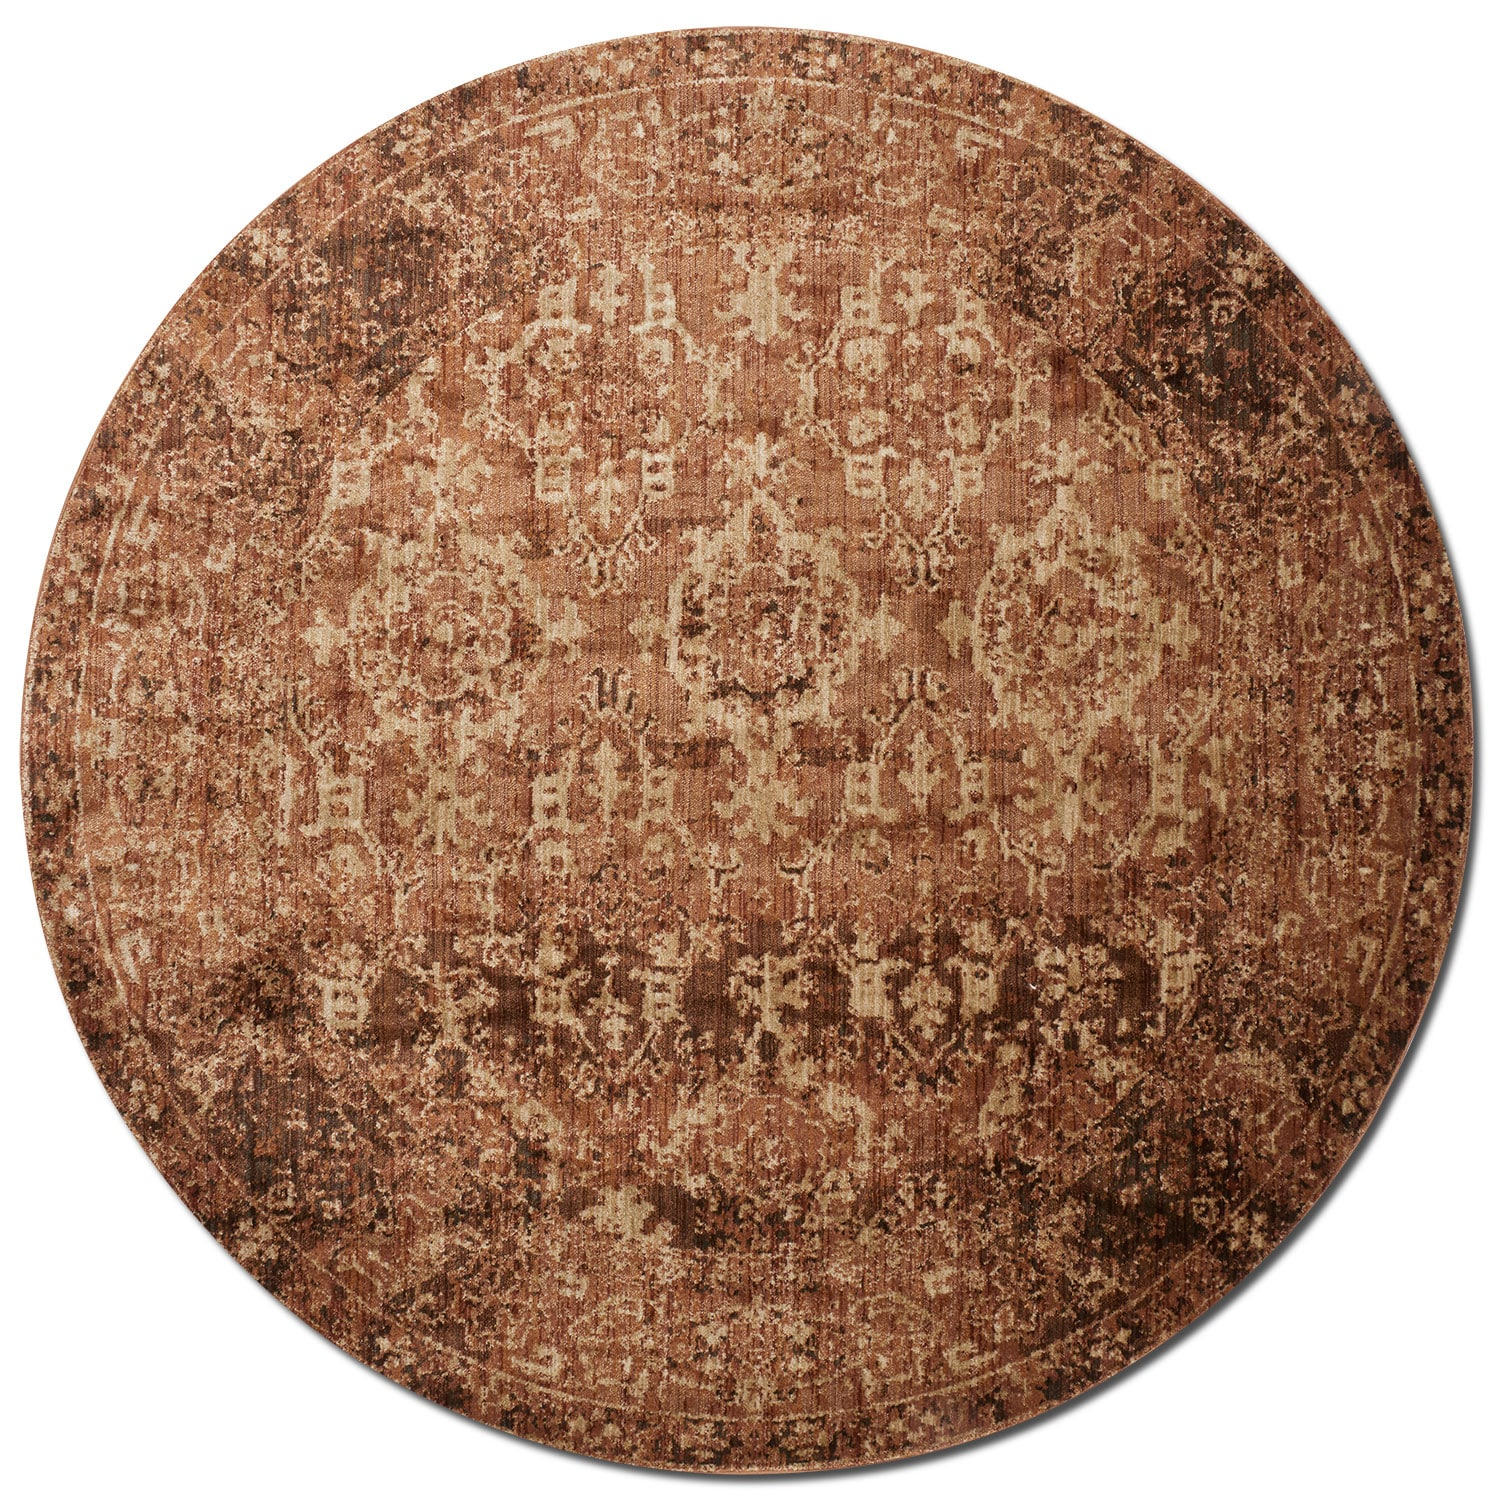 Rugs - Kivi 5' Round Rug - Sand and Copper